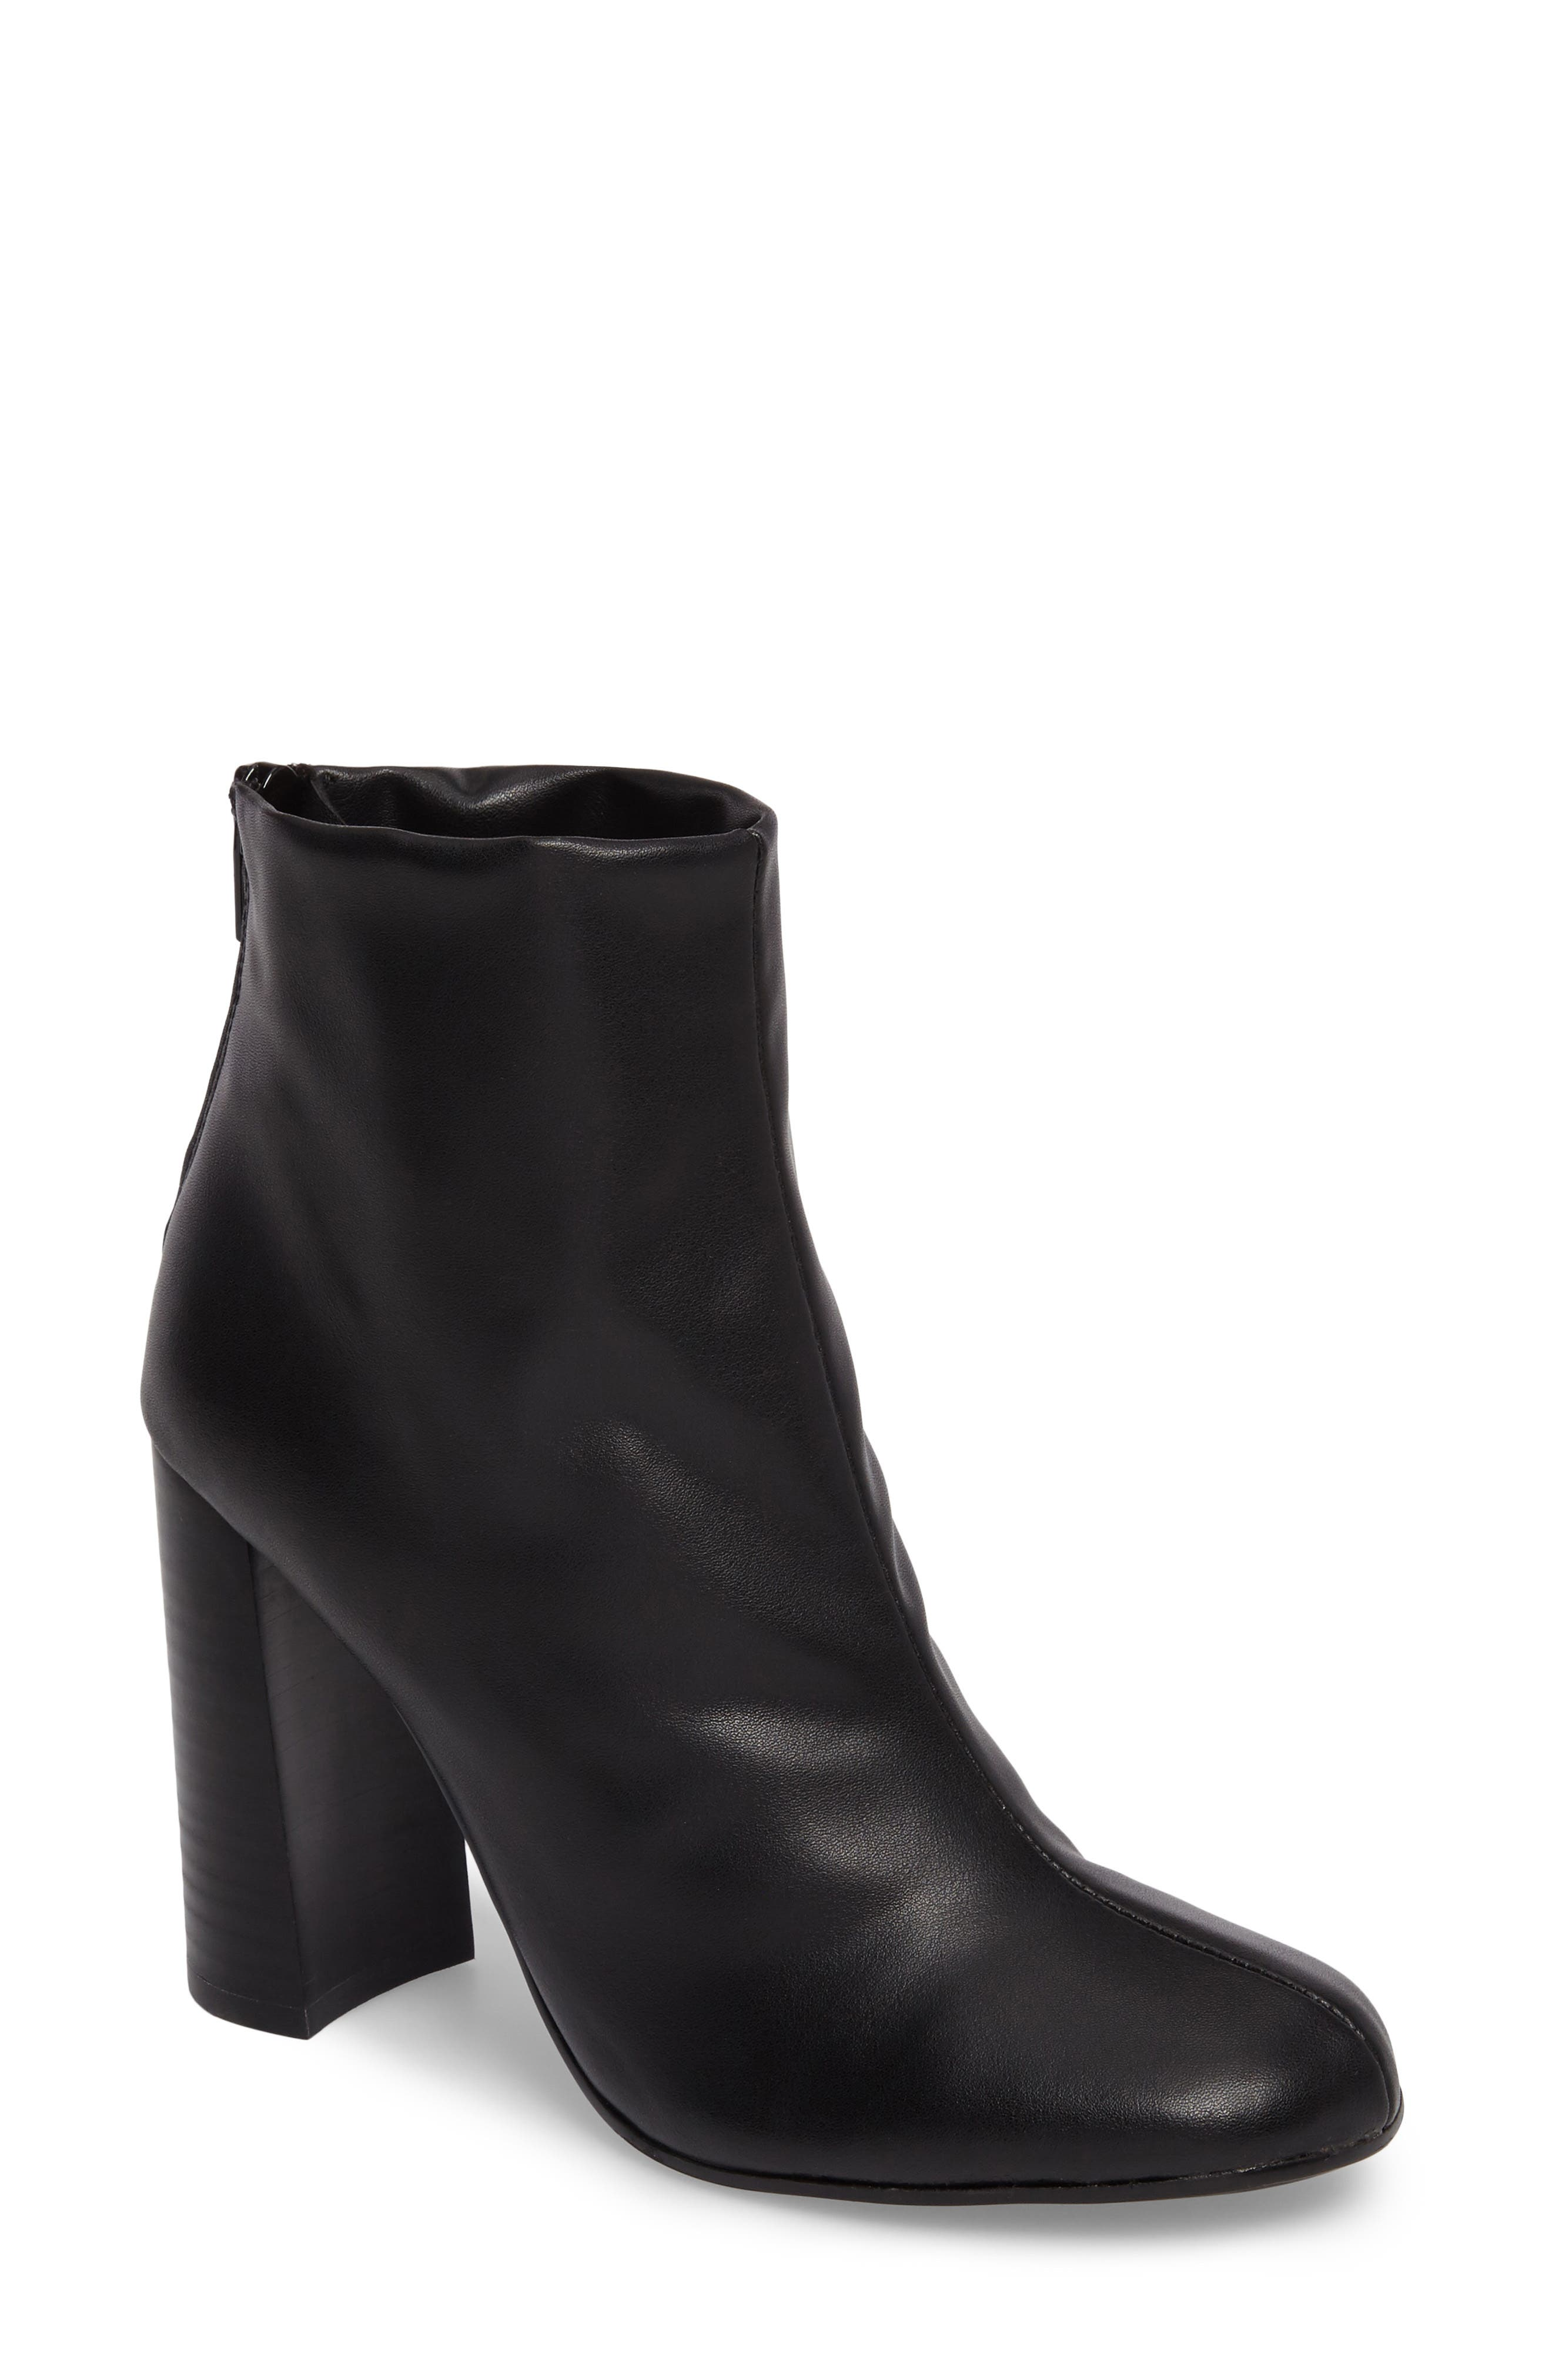 Nyx Stretch Bootie,                         Main,                         color, Black Nappa Leather